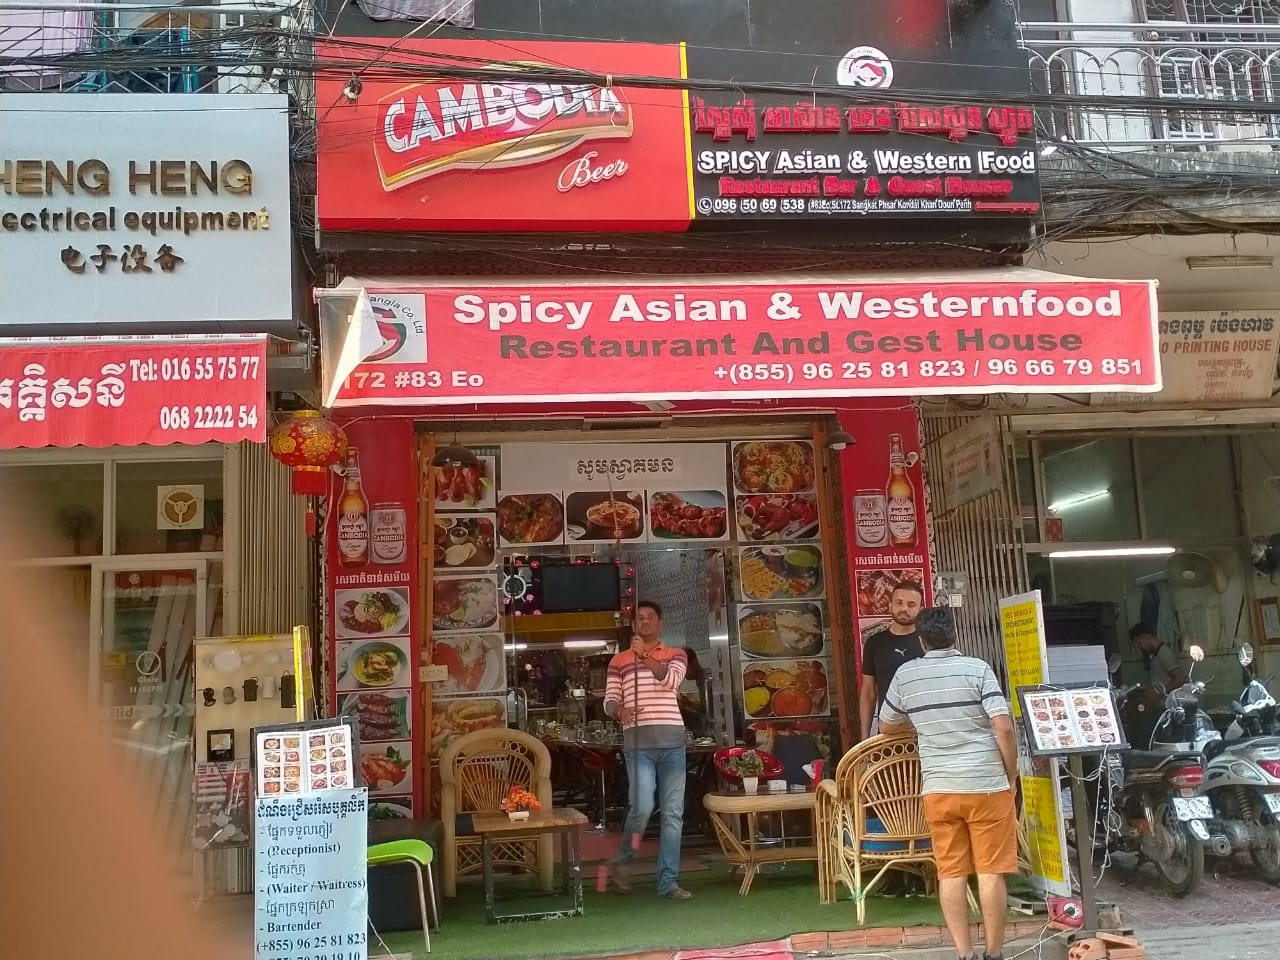 Spicy Asian & Western Food